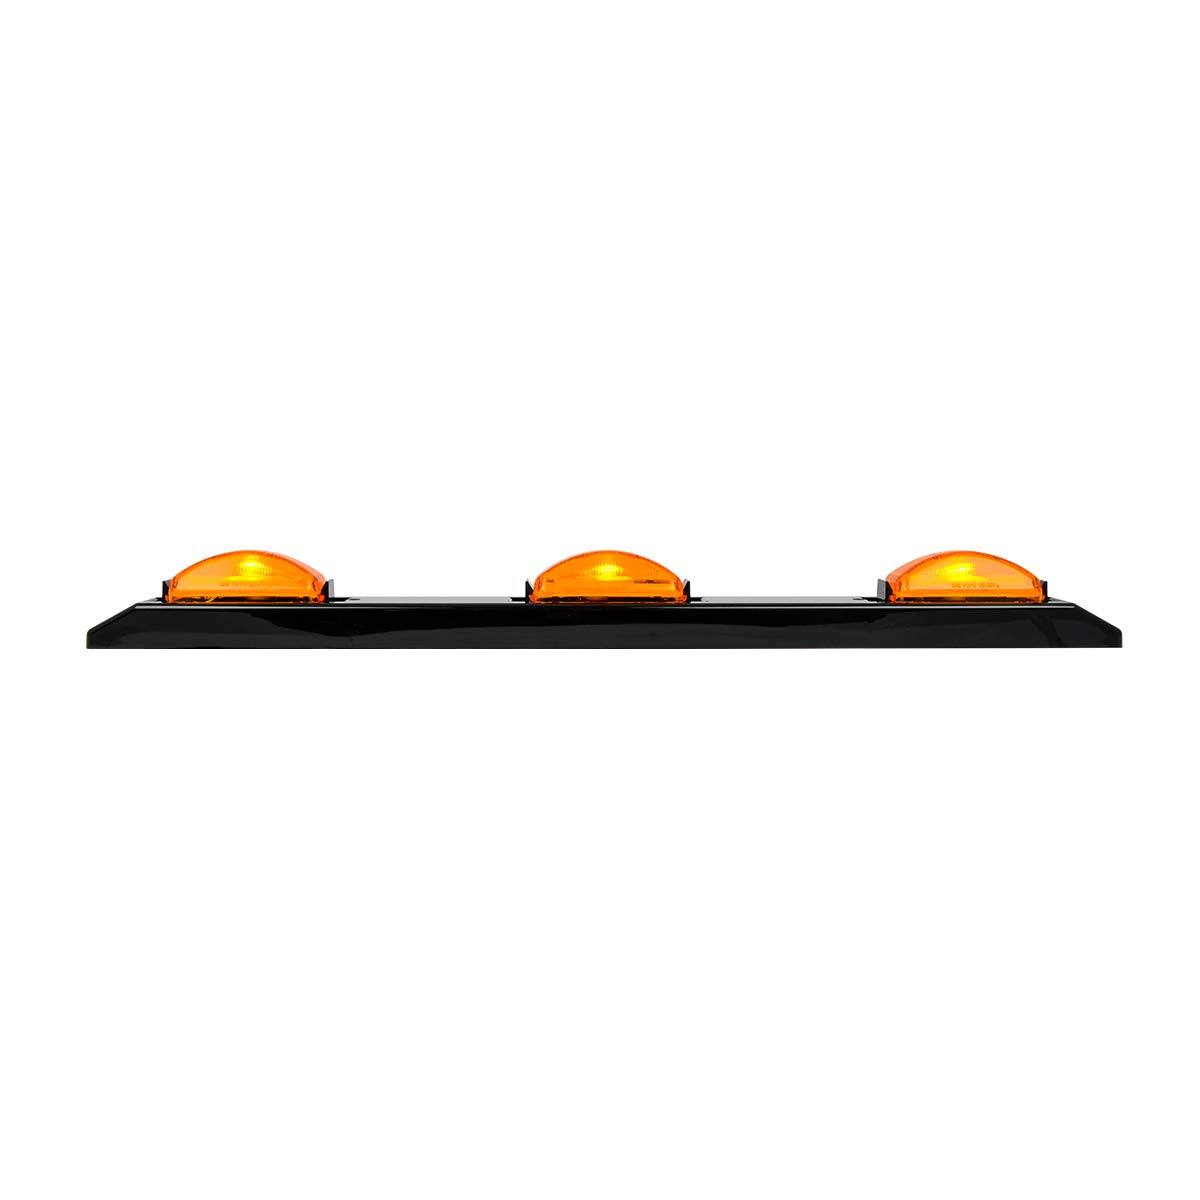 GG Grand General 87096 Marker Light Black Plastic Id Bar with 3 Amber s